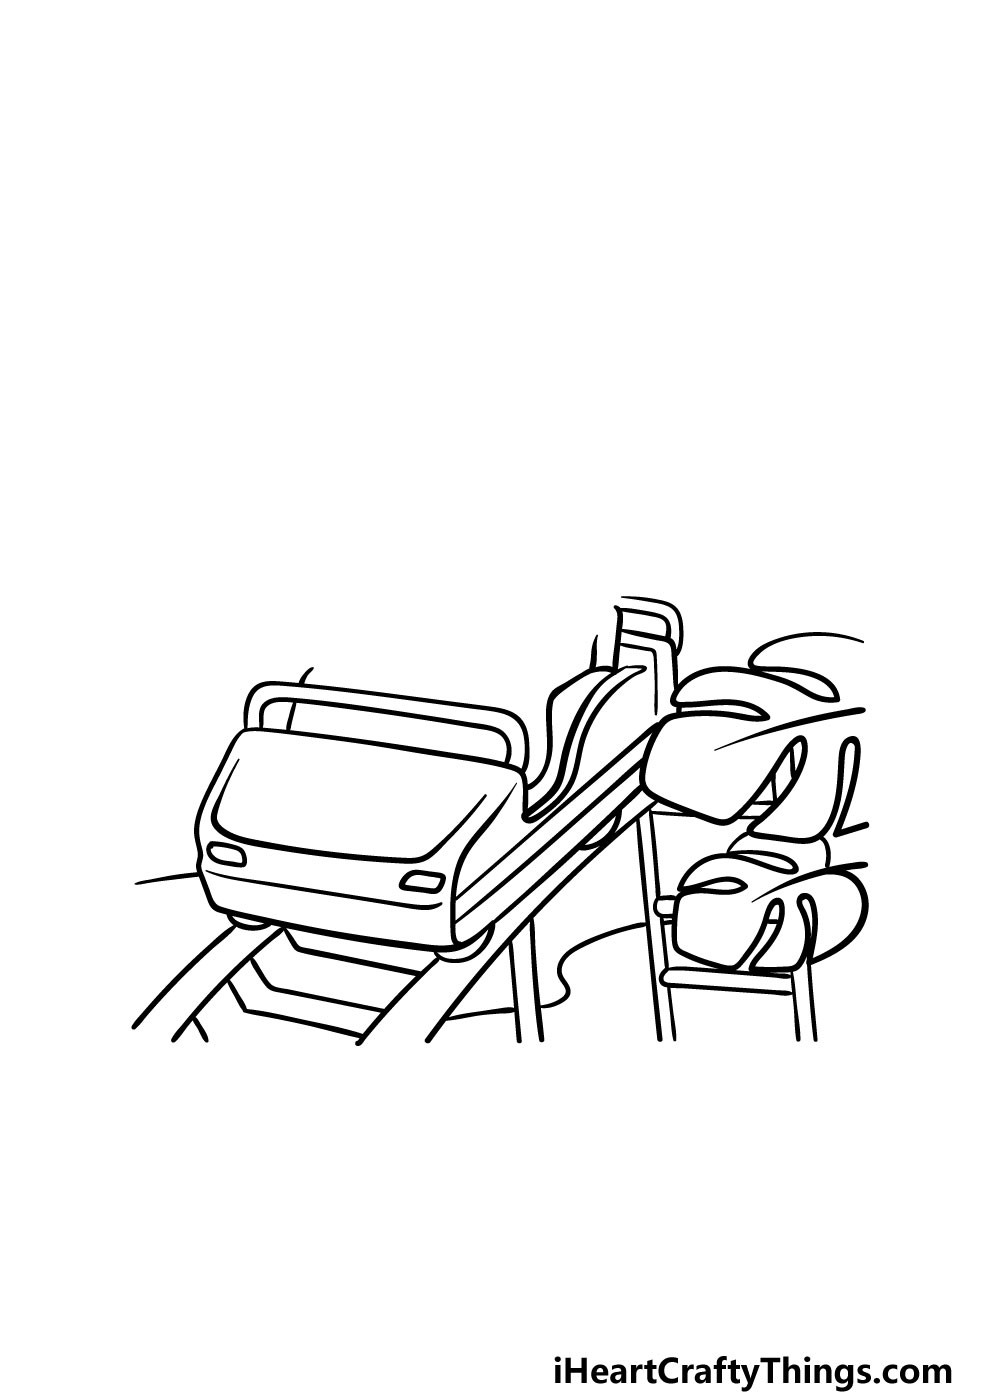 drawing a roller coaster step 2